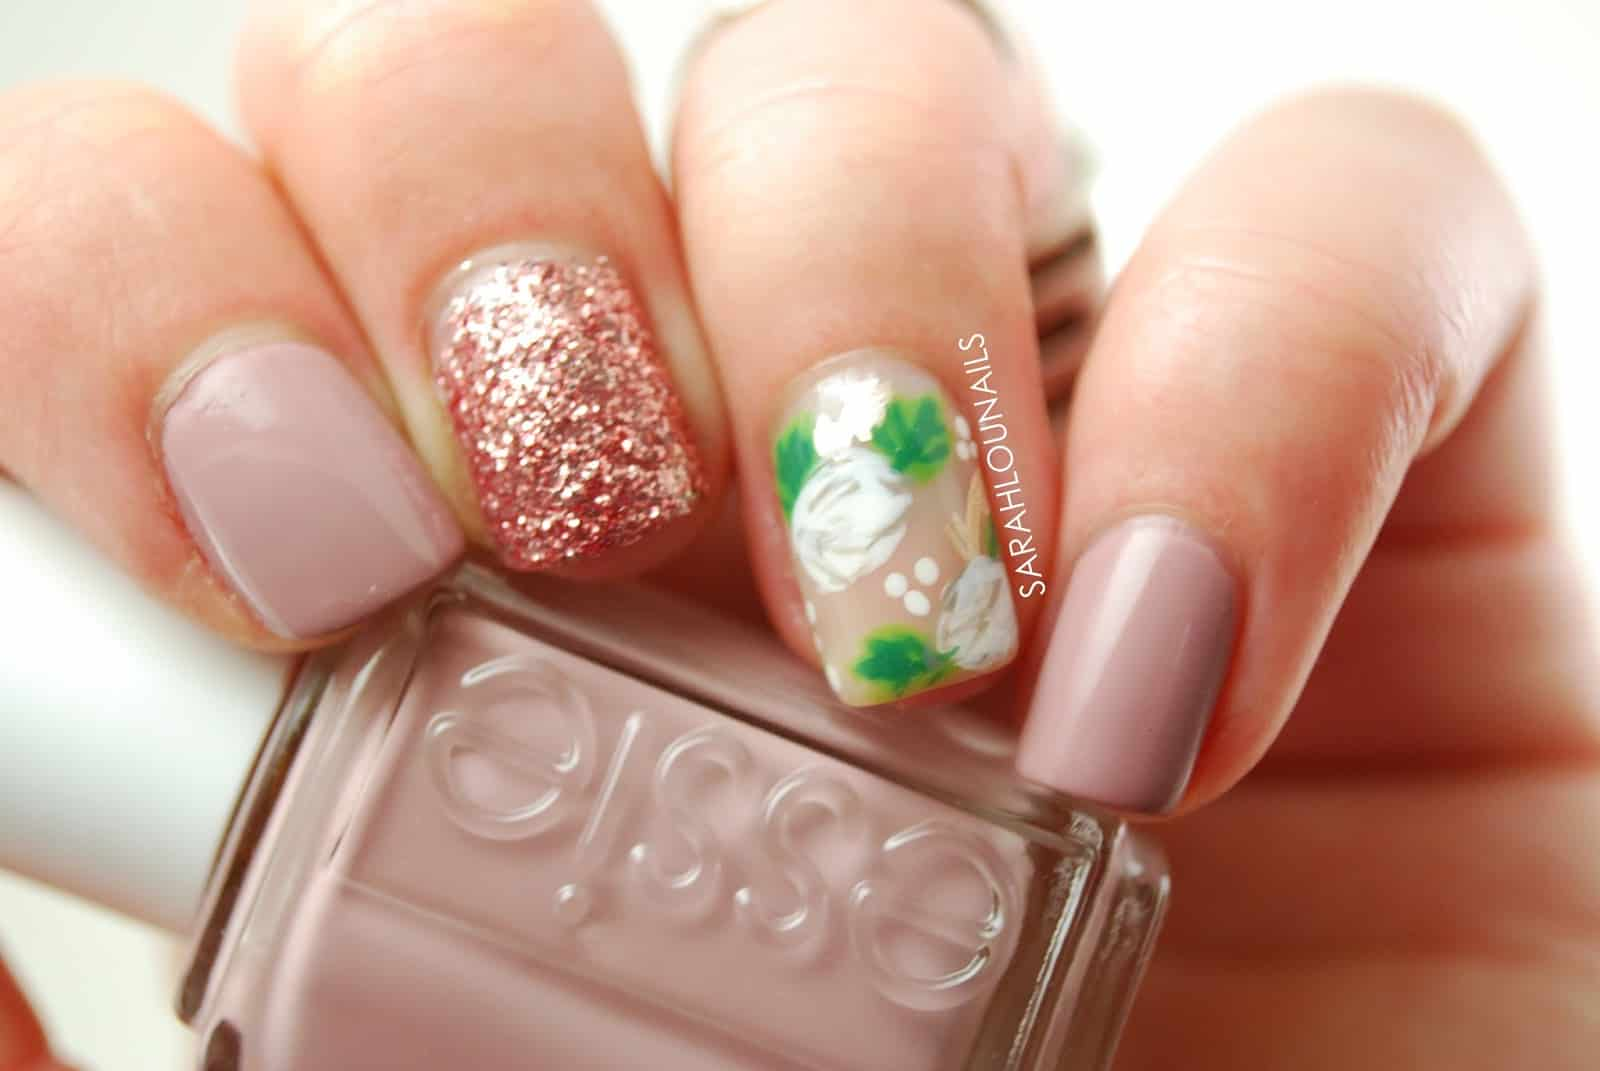 Floral and glitter wedding nail designs